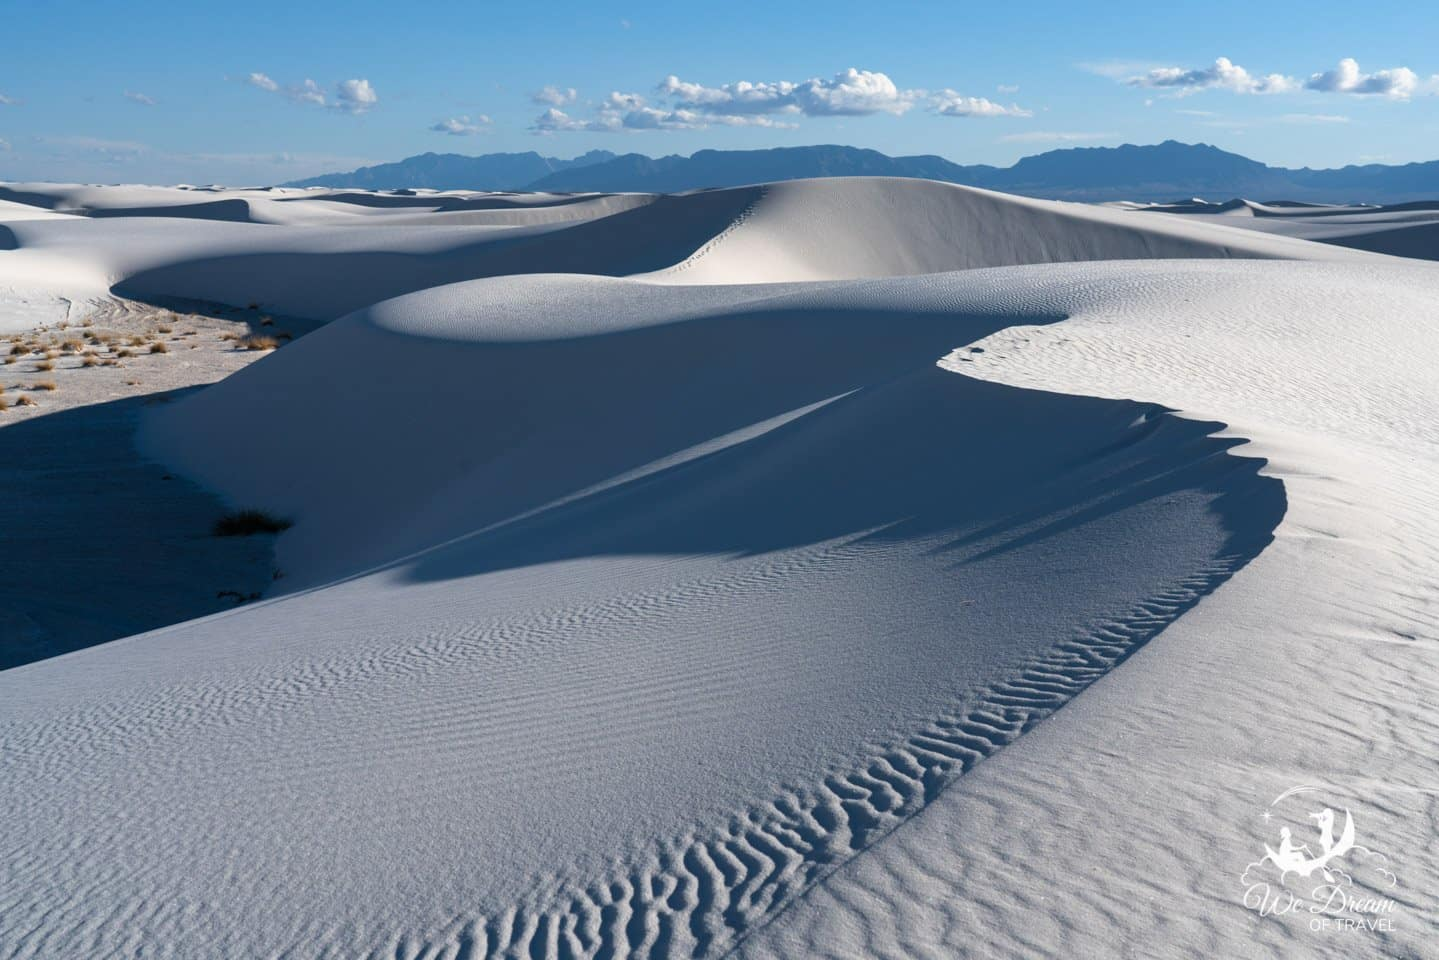 This late afternoon White Sands picture attempts to capture the essence of the park in a simple way.